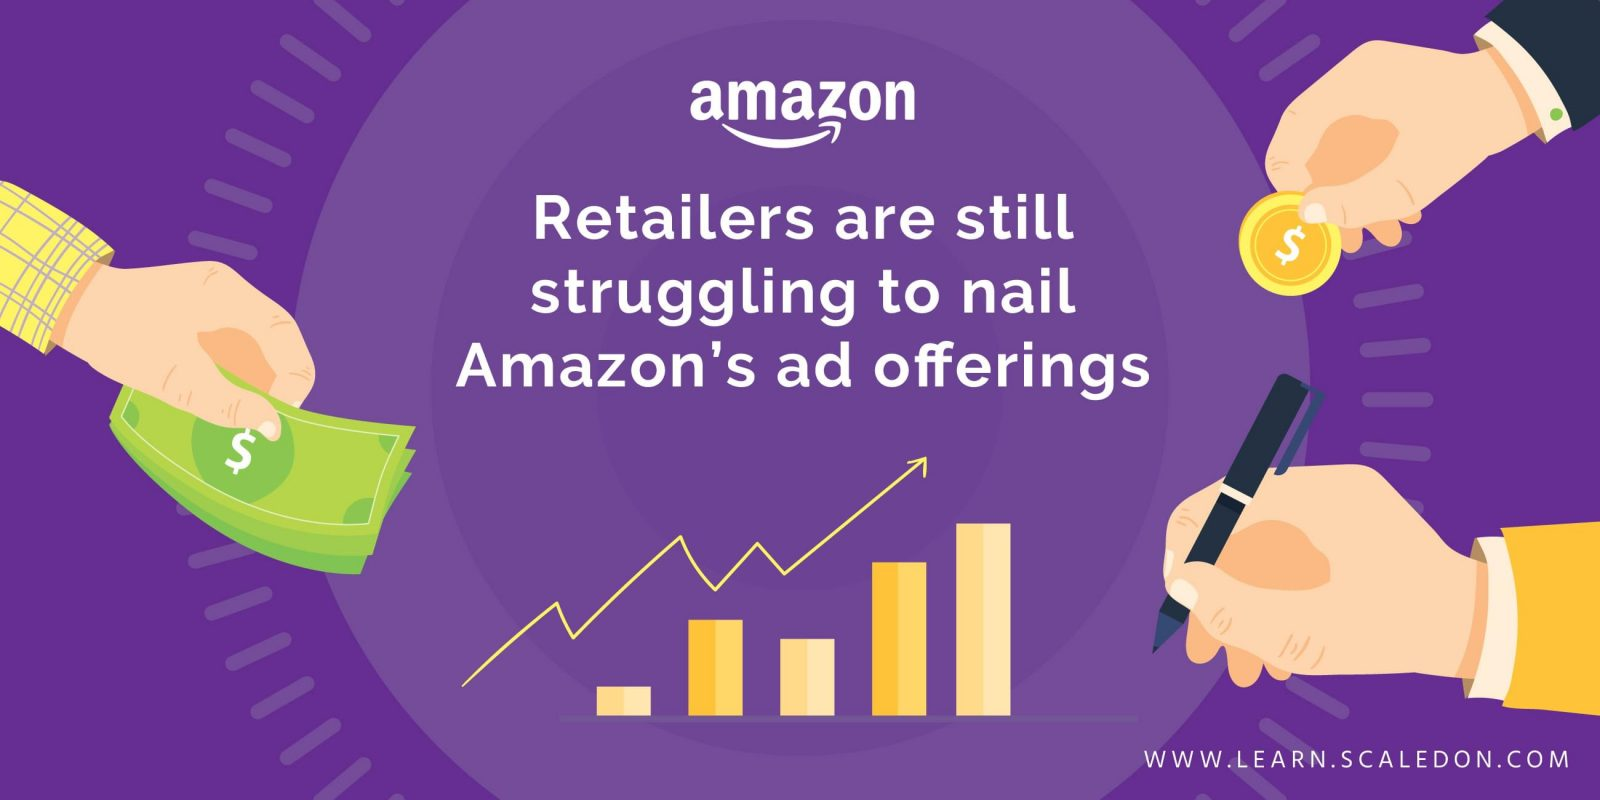 Retailers are still struggling to nail Amazons ad offerings